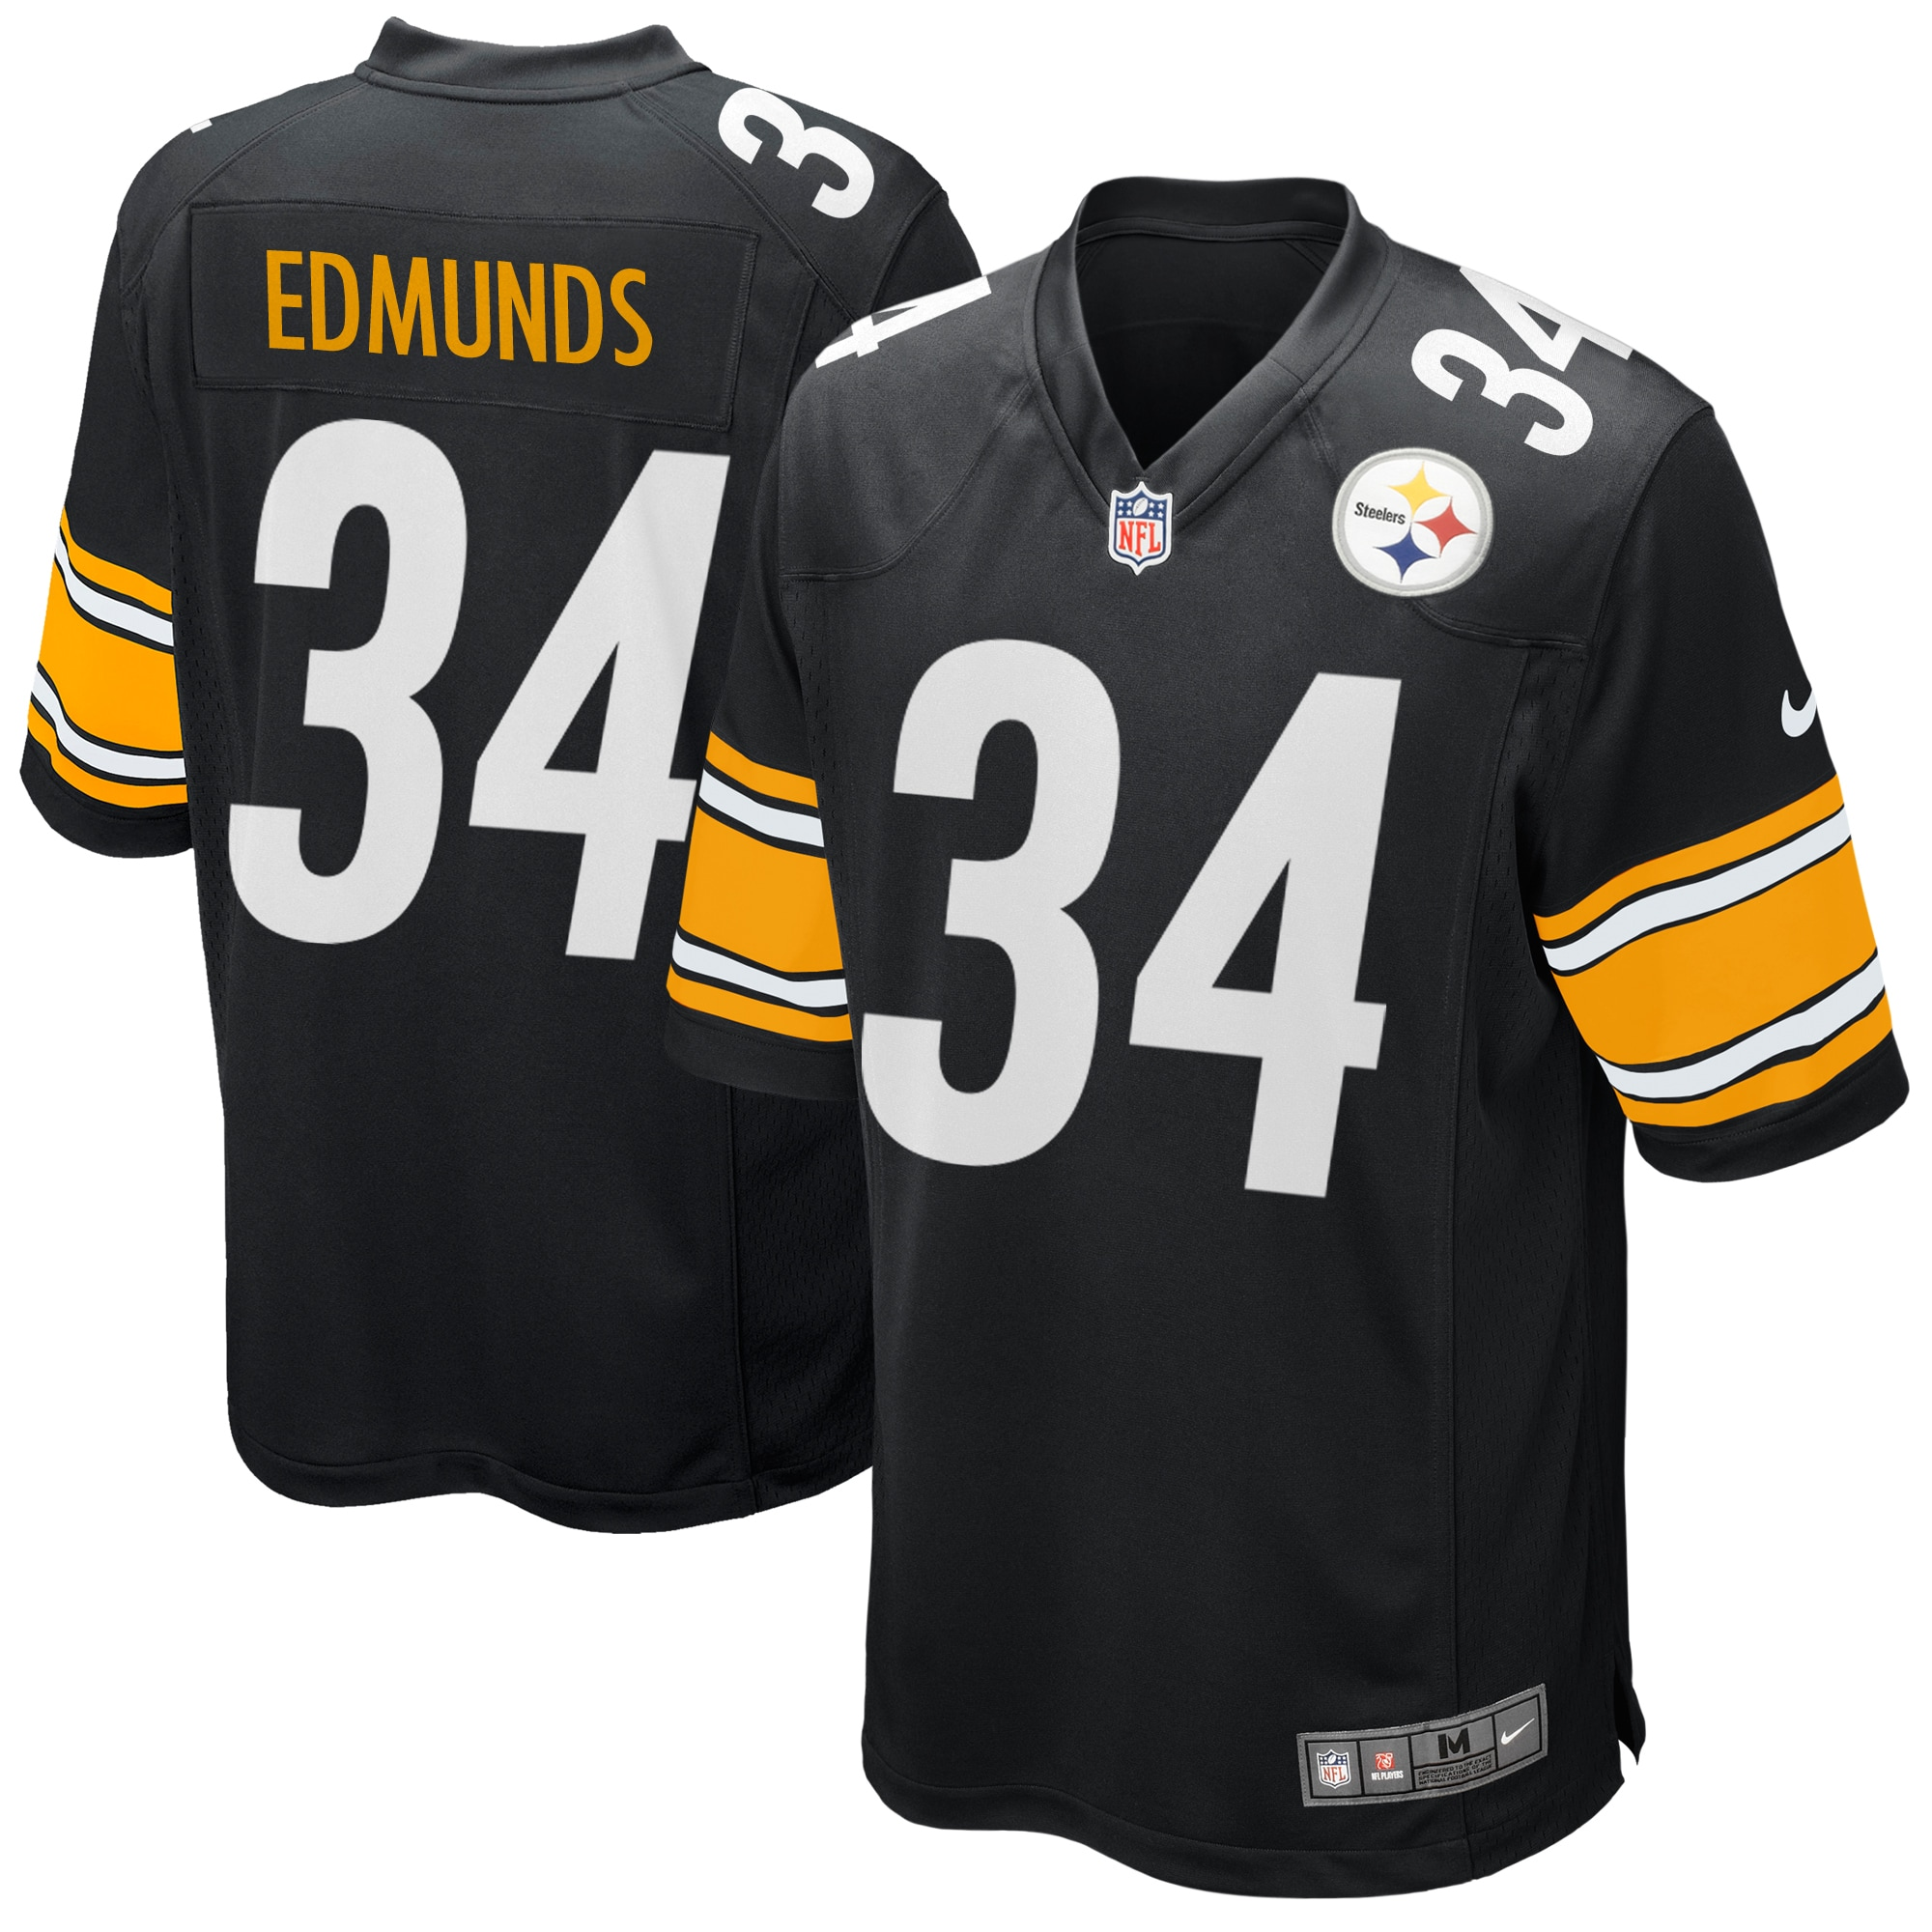 Terrell Edmunds Pittsburgh Steelers Nike Game Player Jersey - Black